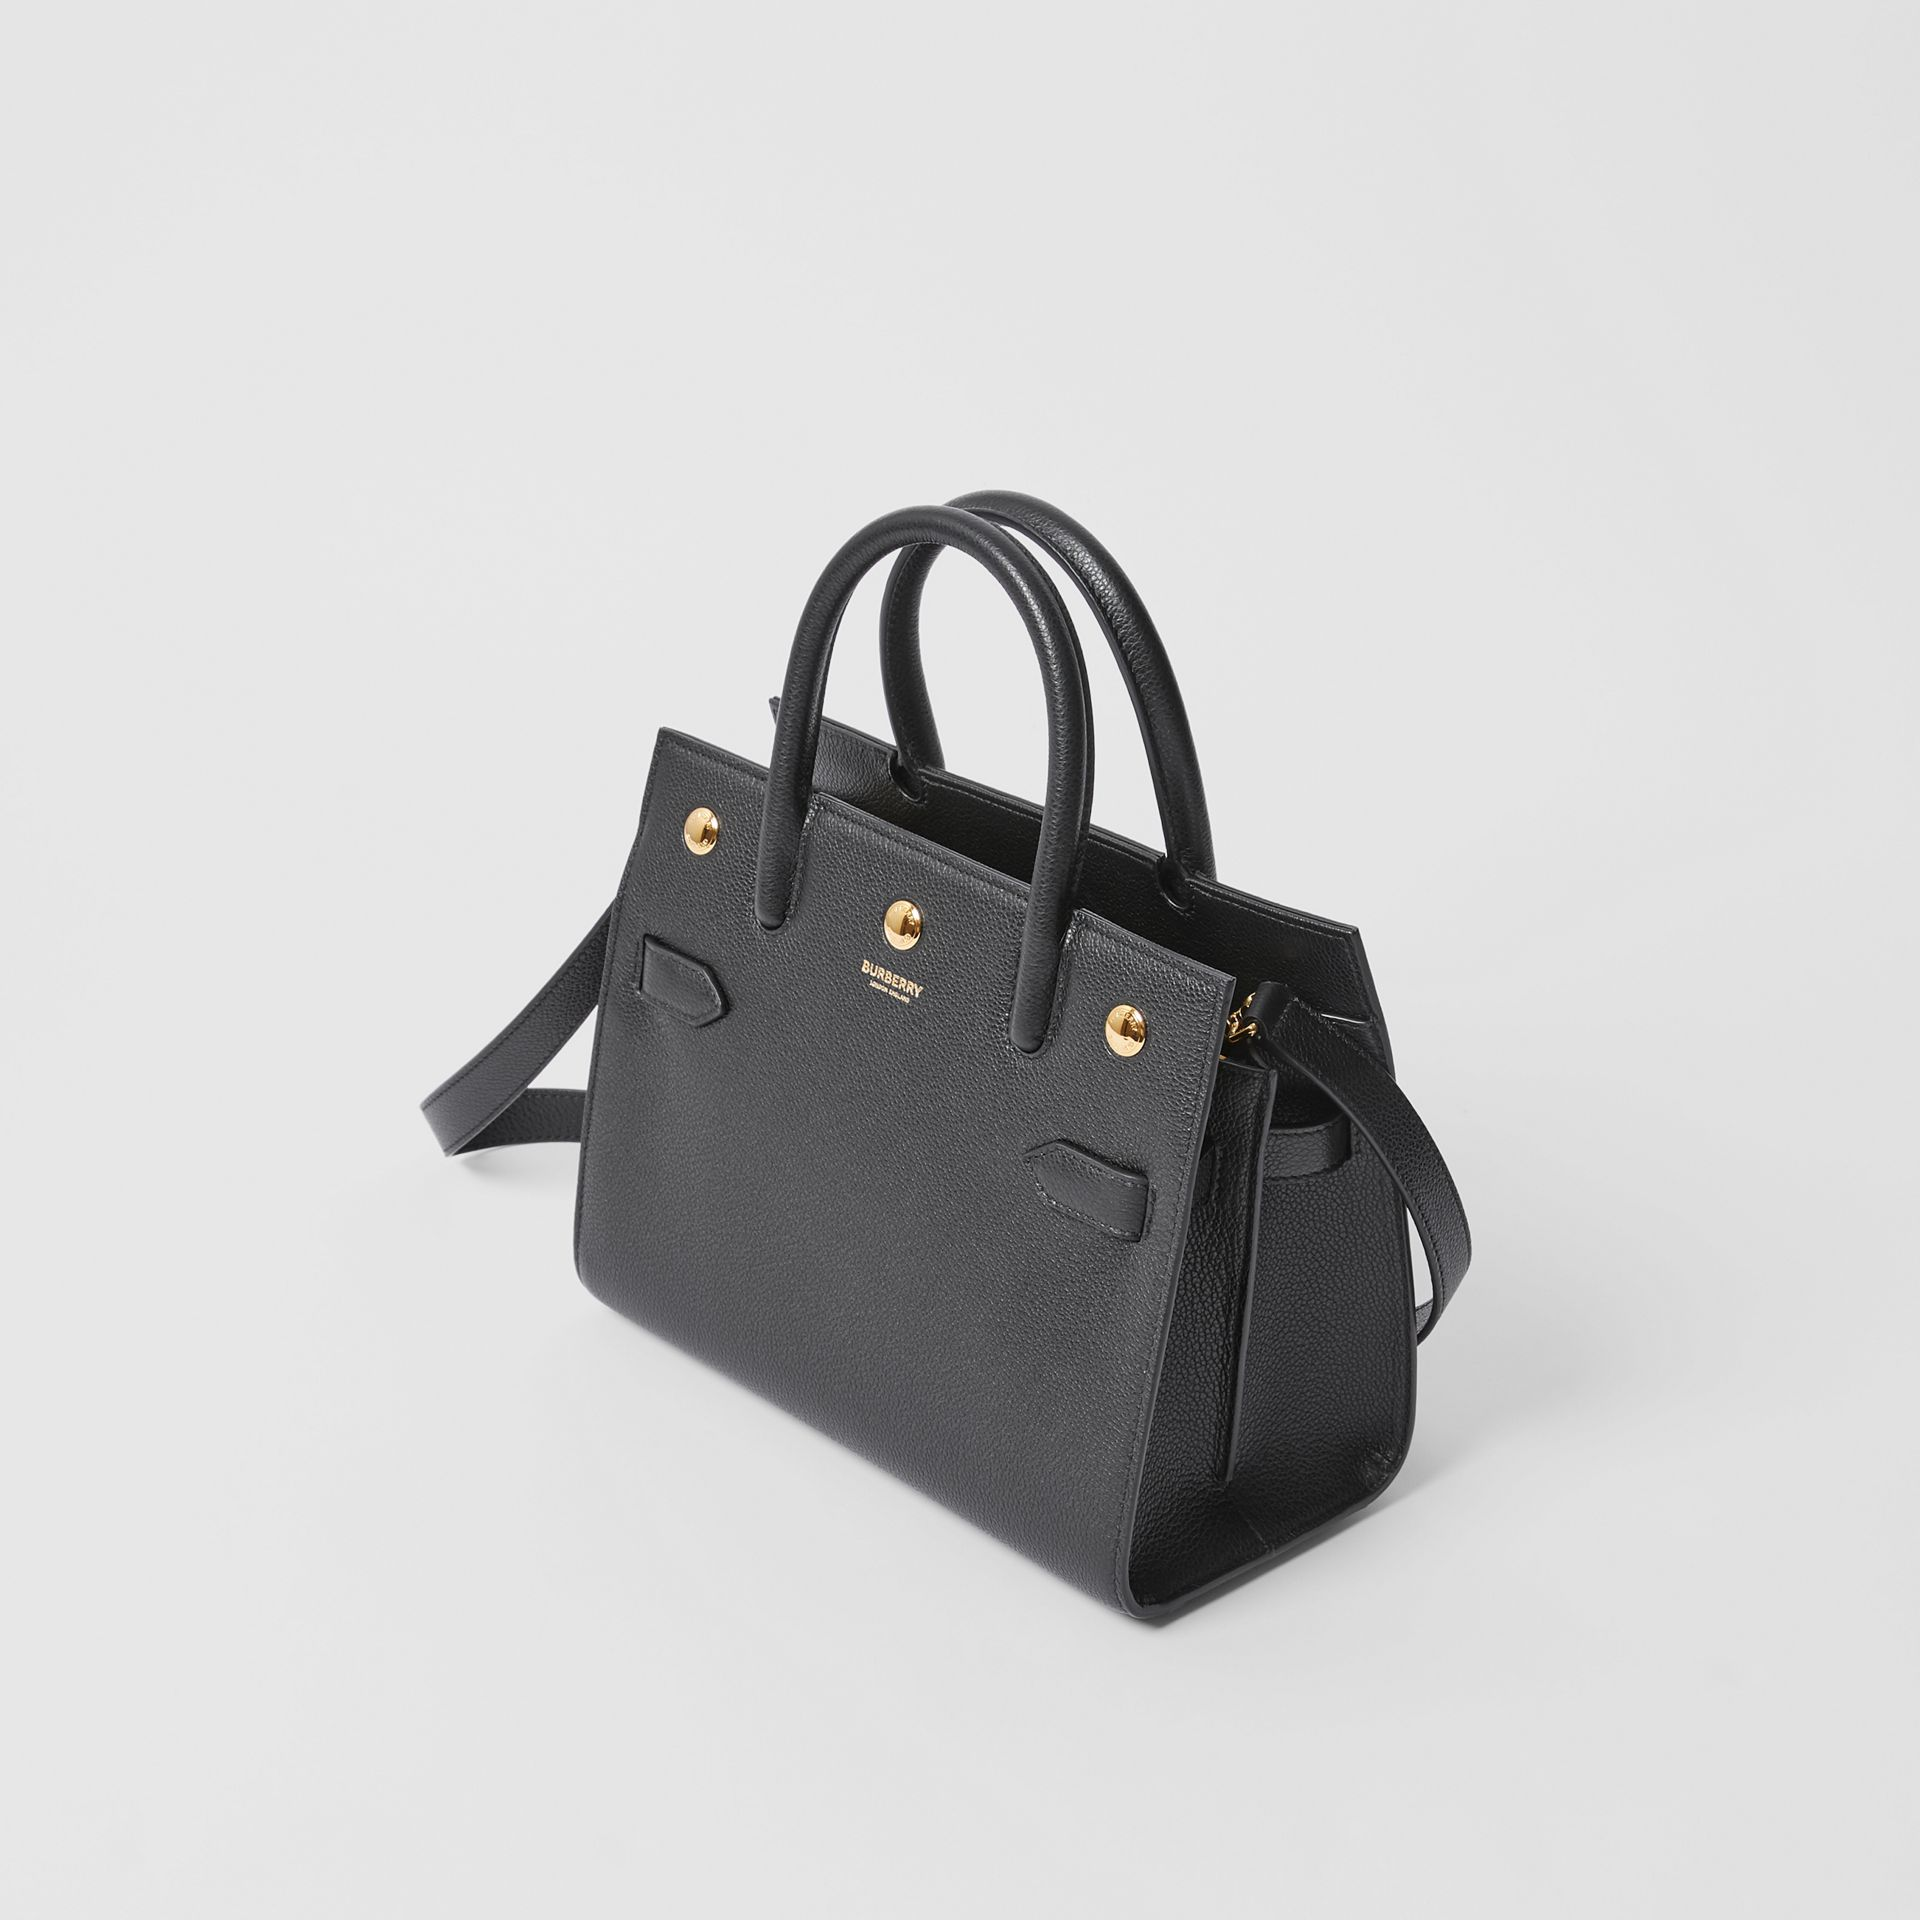 Mini Leather Two-handle Title Bag in Black - Women | Burberry - gallery image 3